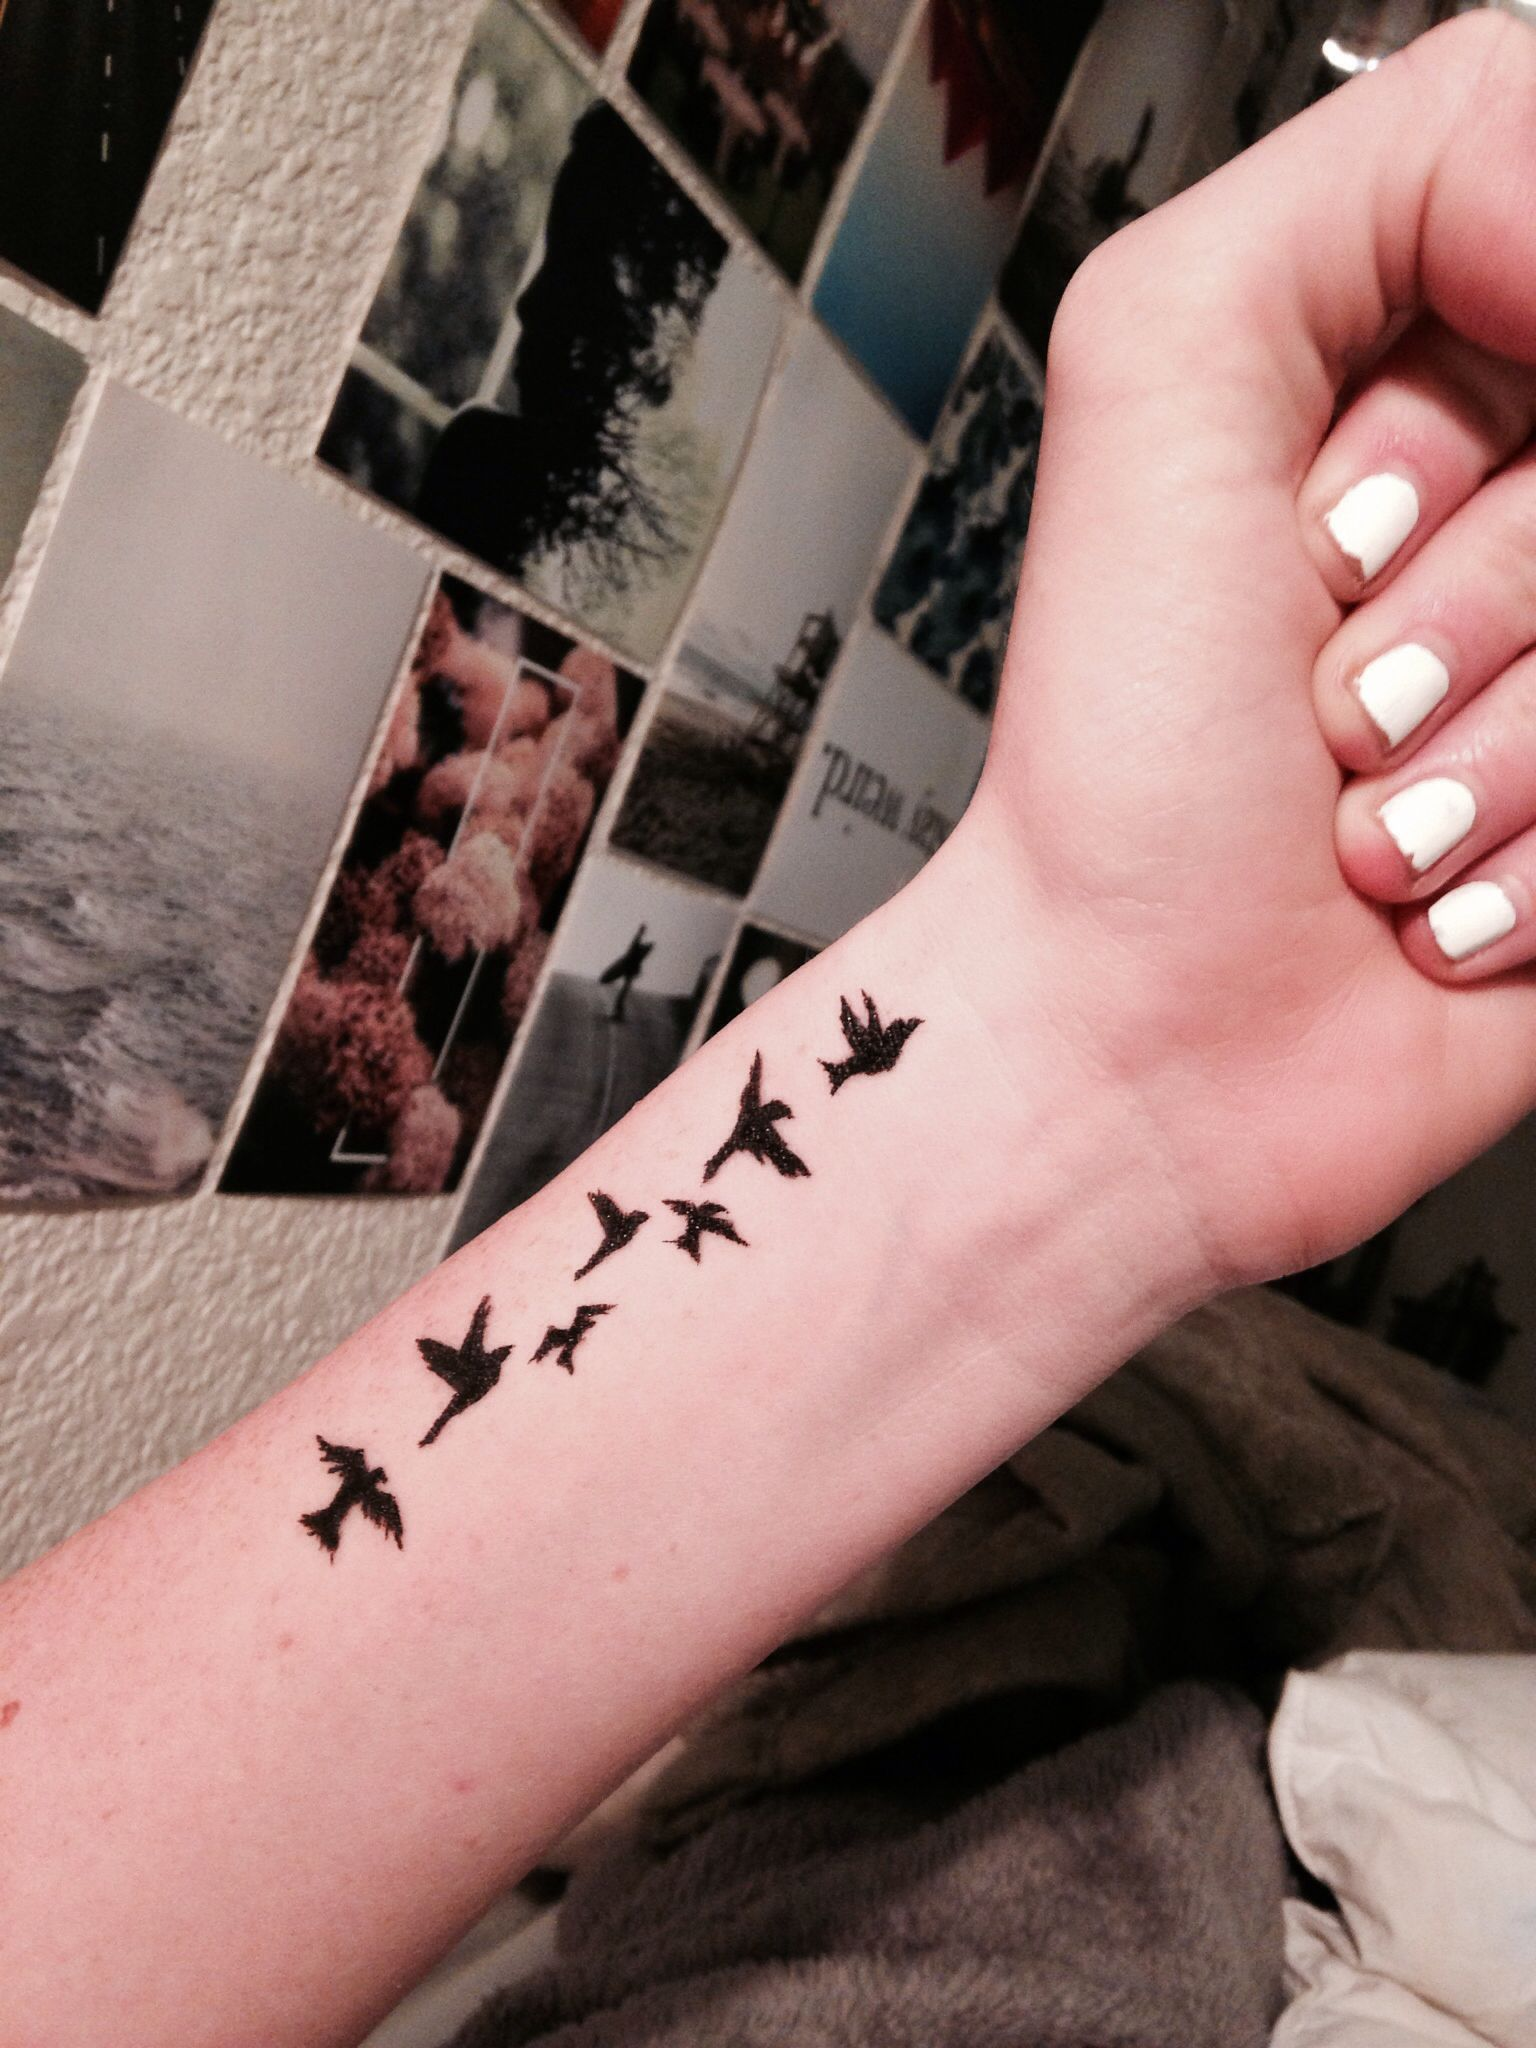 Birds tattoo wrist tattoo typical girl tat Tattoo